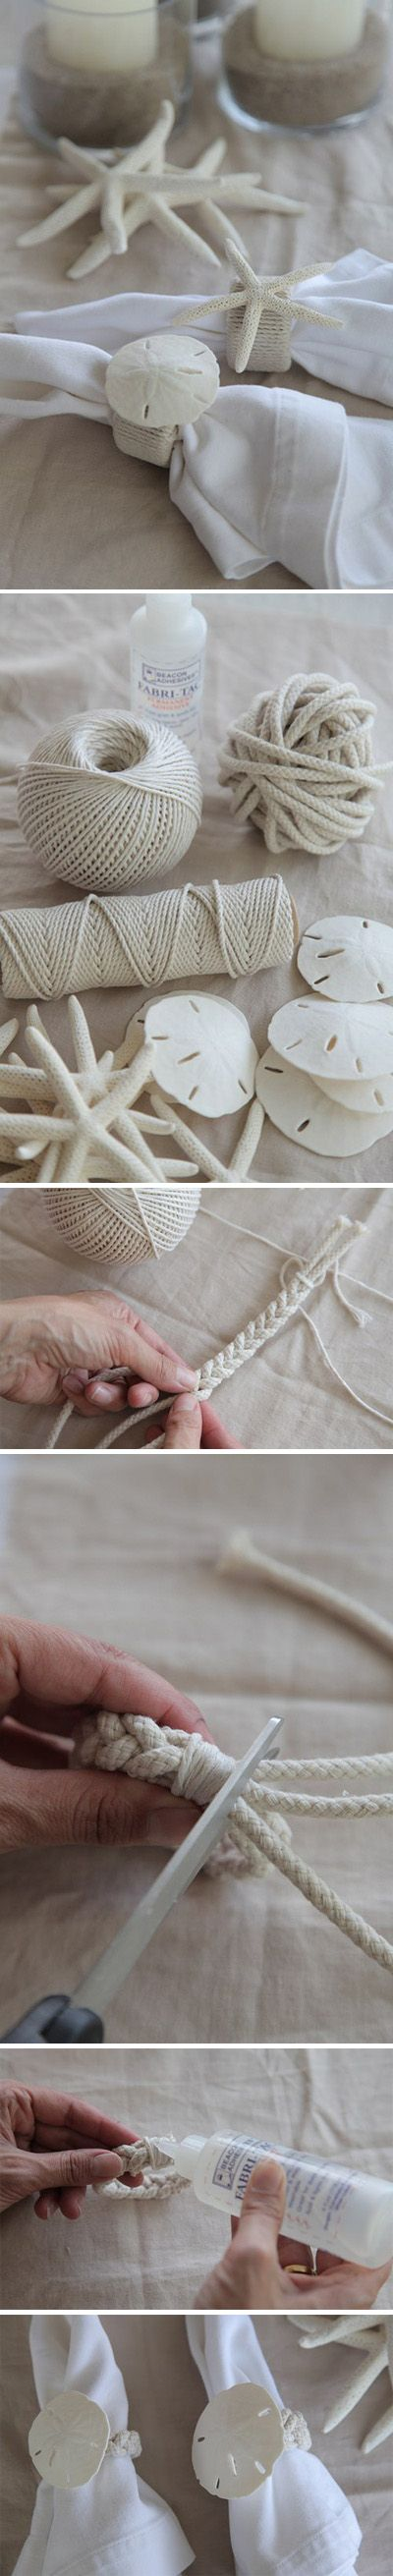 Tutorial to make a braided beach theme napkin ring.